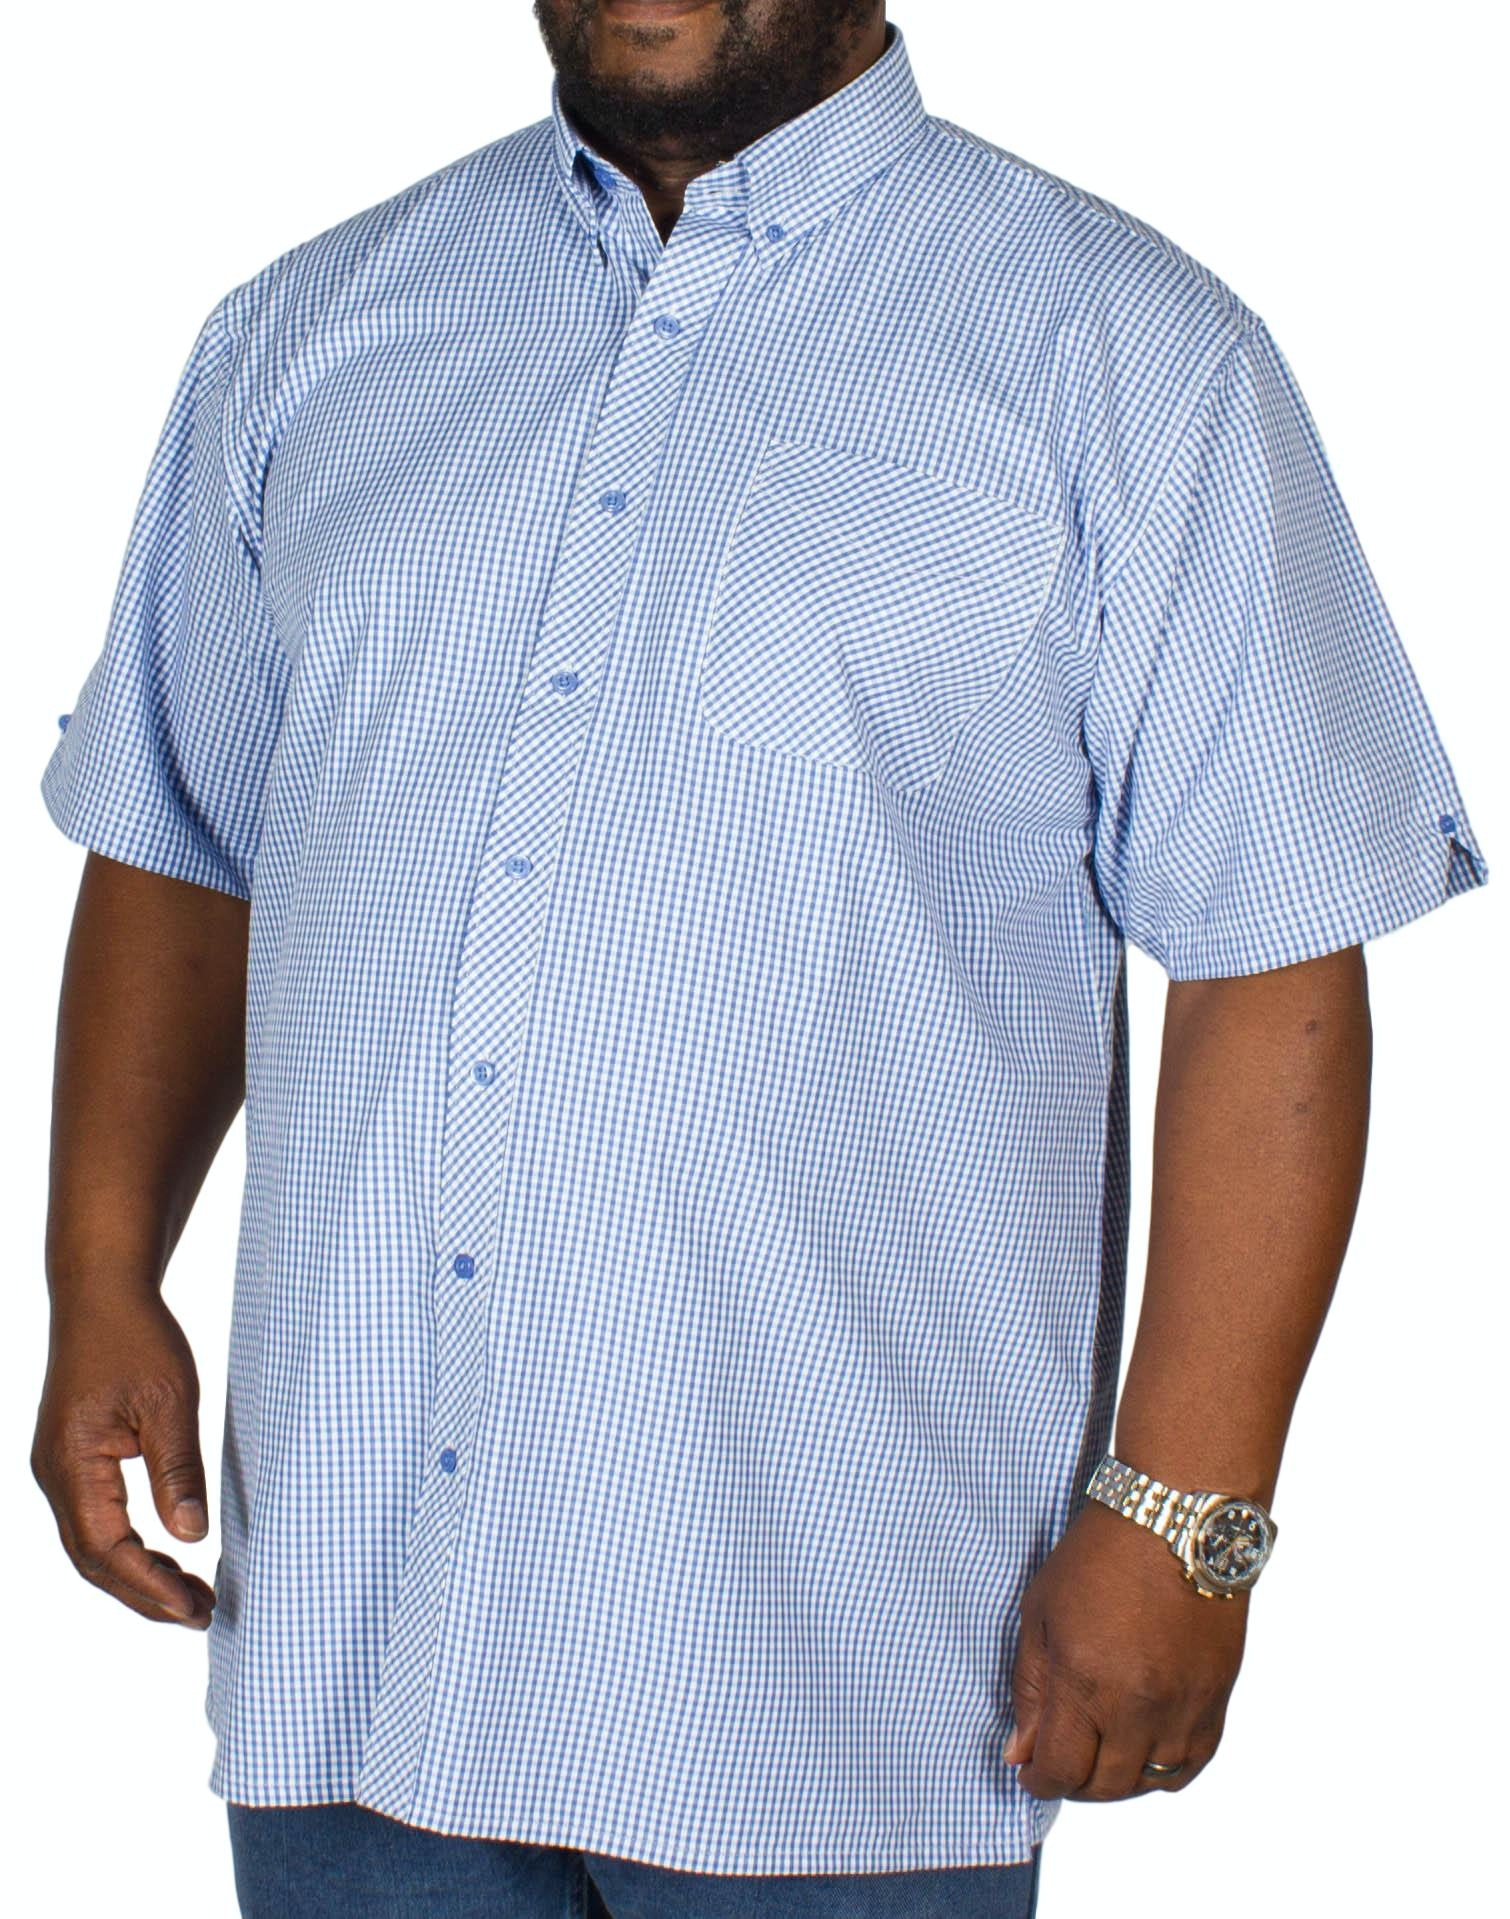 Espionage Gingham Short Sleeve Shirt Blue/White